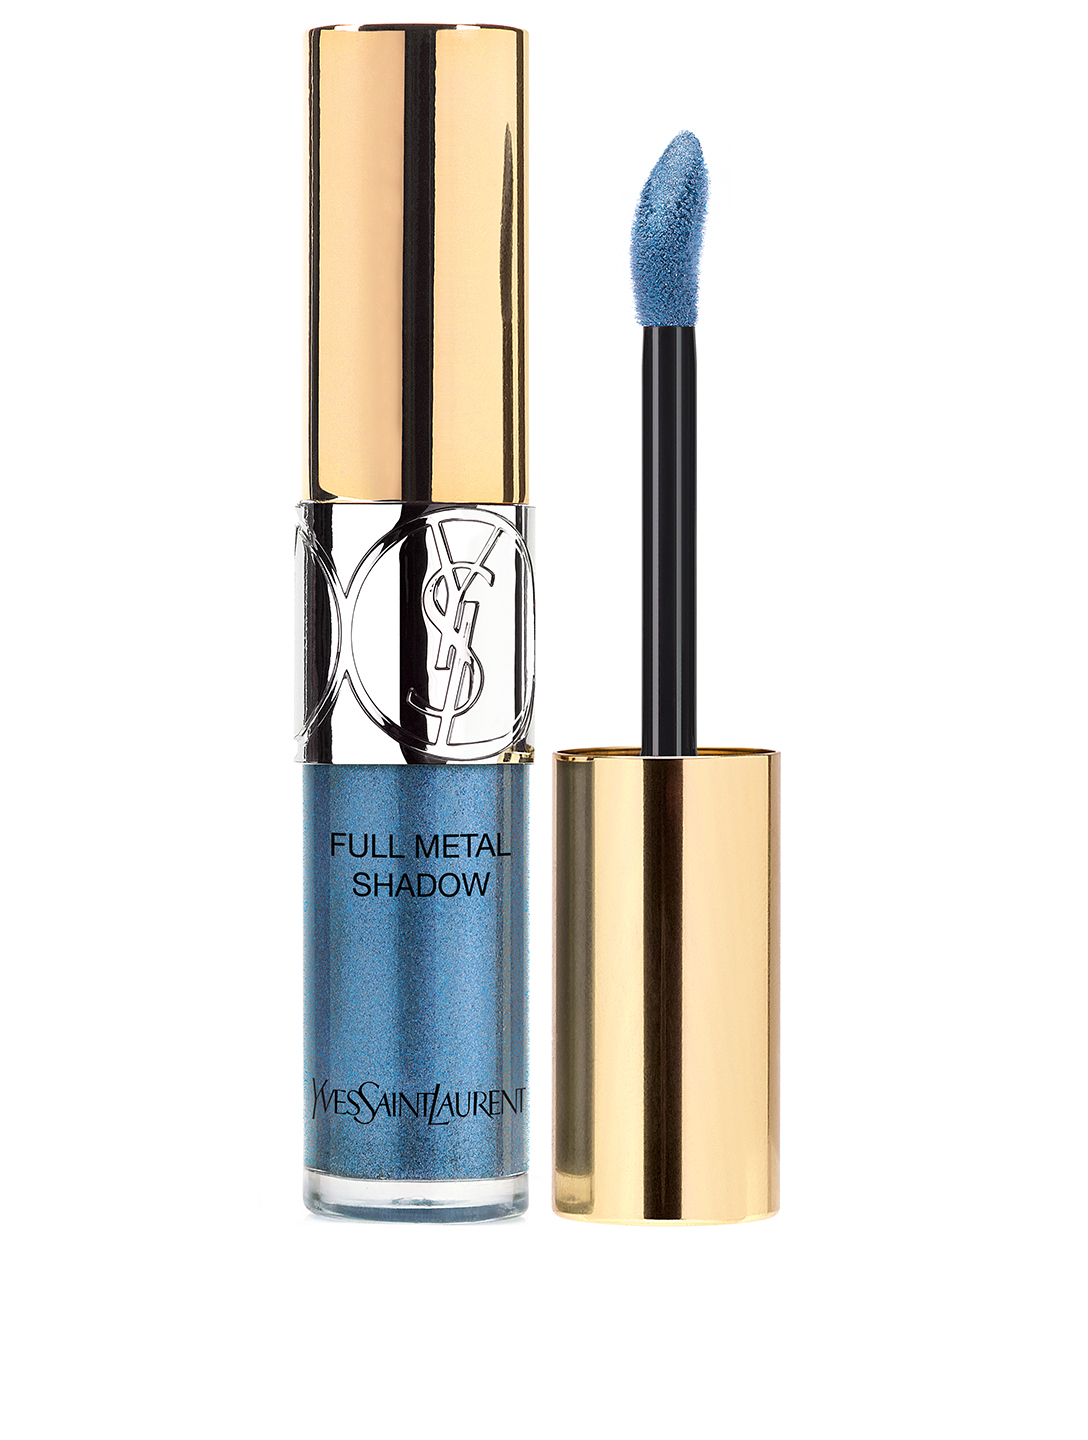 YVES SAINT LAURENT Full Metal Shadow – Spring Collection Beauty Blue